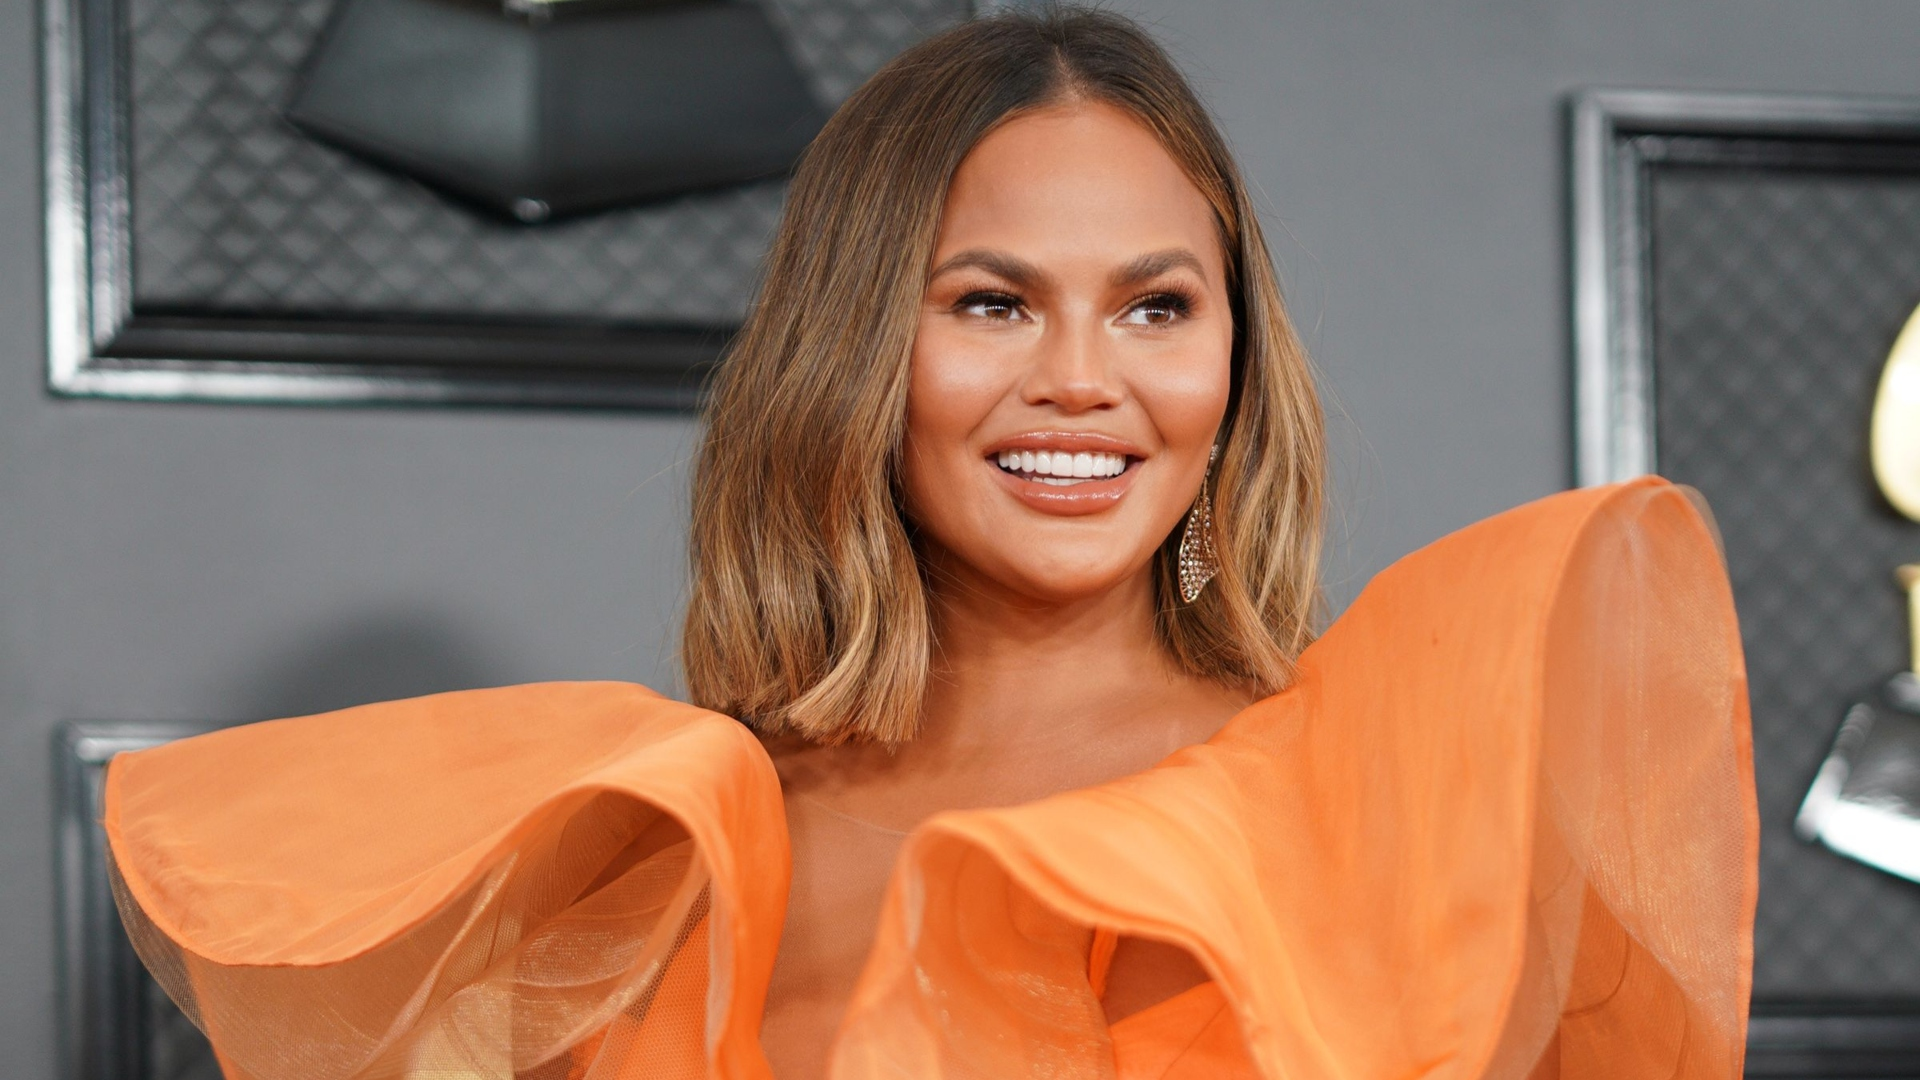 Chrissy Teigen Wishes Son Miles a Happy 2nd Birthday With Cute Tribute: 'You're Bonkers, My Tiny Fearless Love Bug'